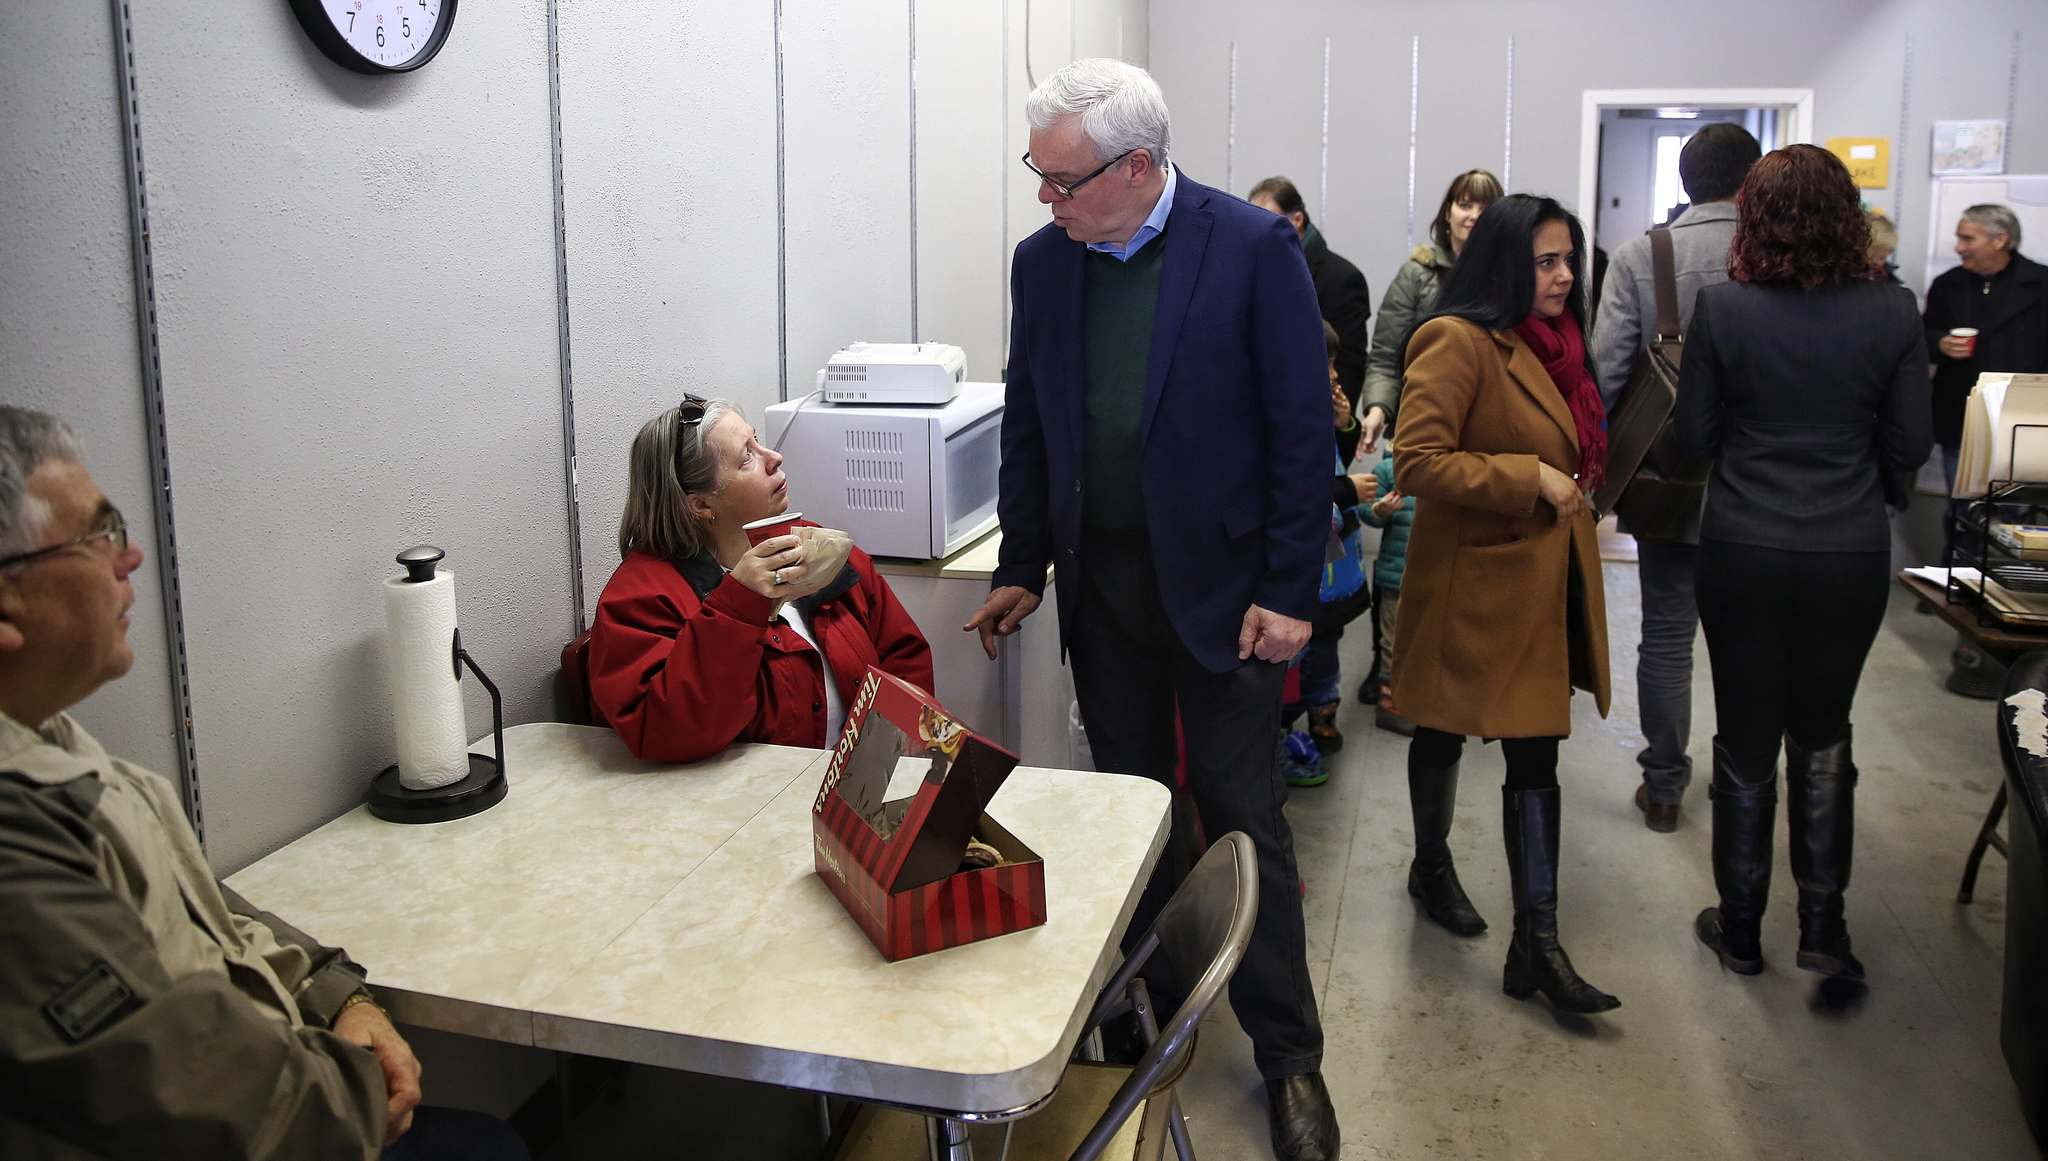 MIKE DEAL / WINNIPEG FREE PRESS</p><p>NDP Leader Greg Selinger chats with supporter Marilyn Rosaasen during an election stop at St. James MLA Deanne Crothers&rsquo; campaign office.</p></p>